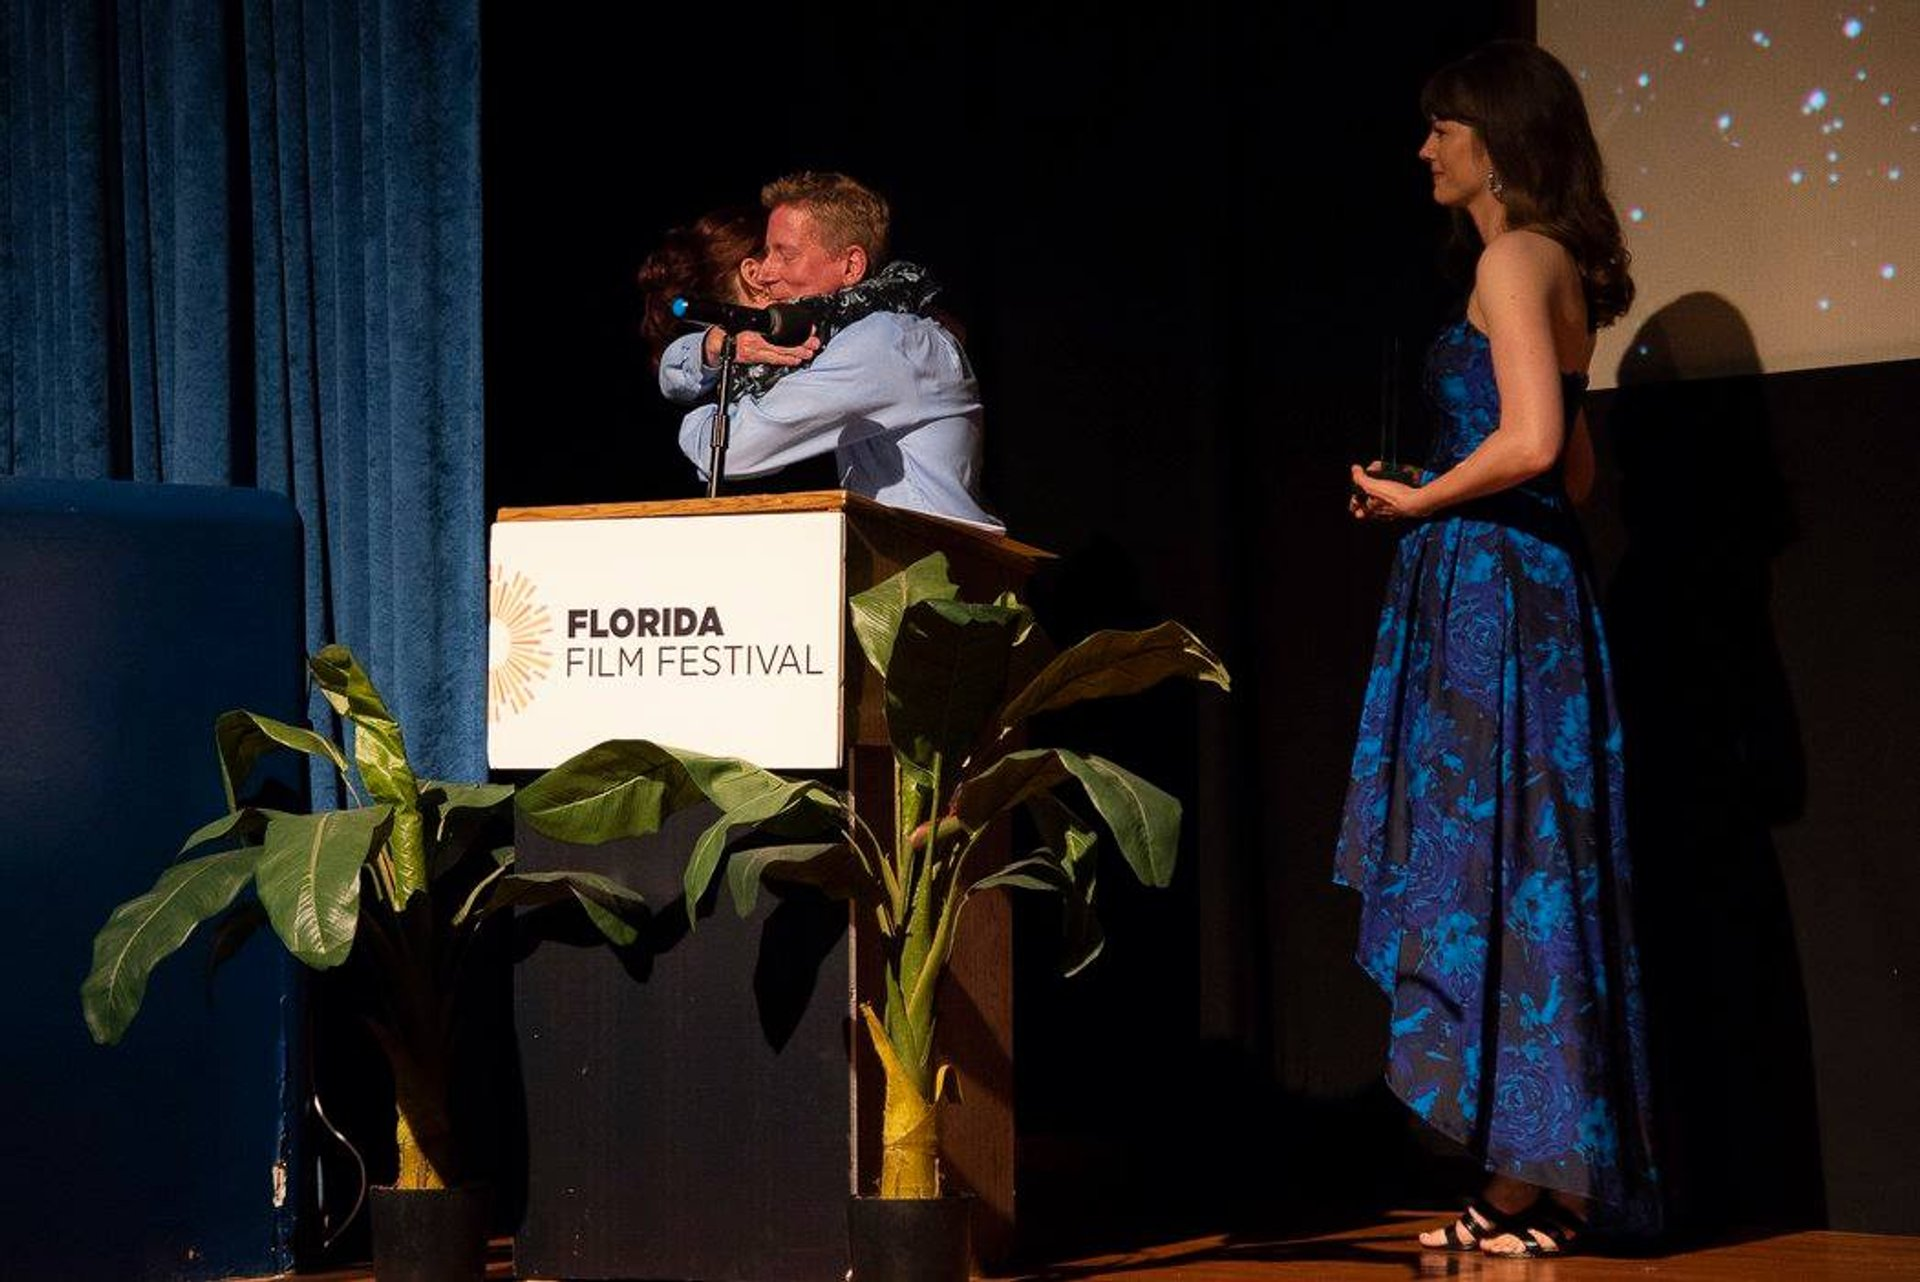 Best time for Florida Film Festival in Florida